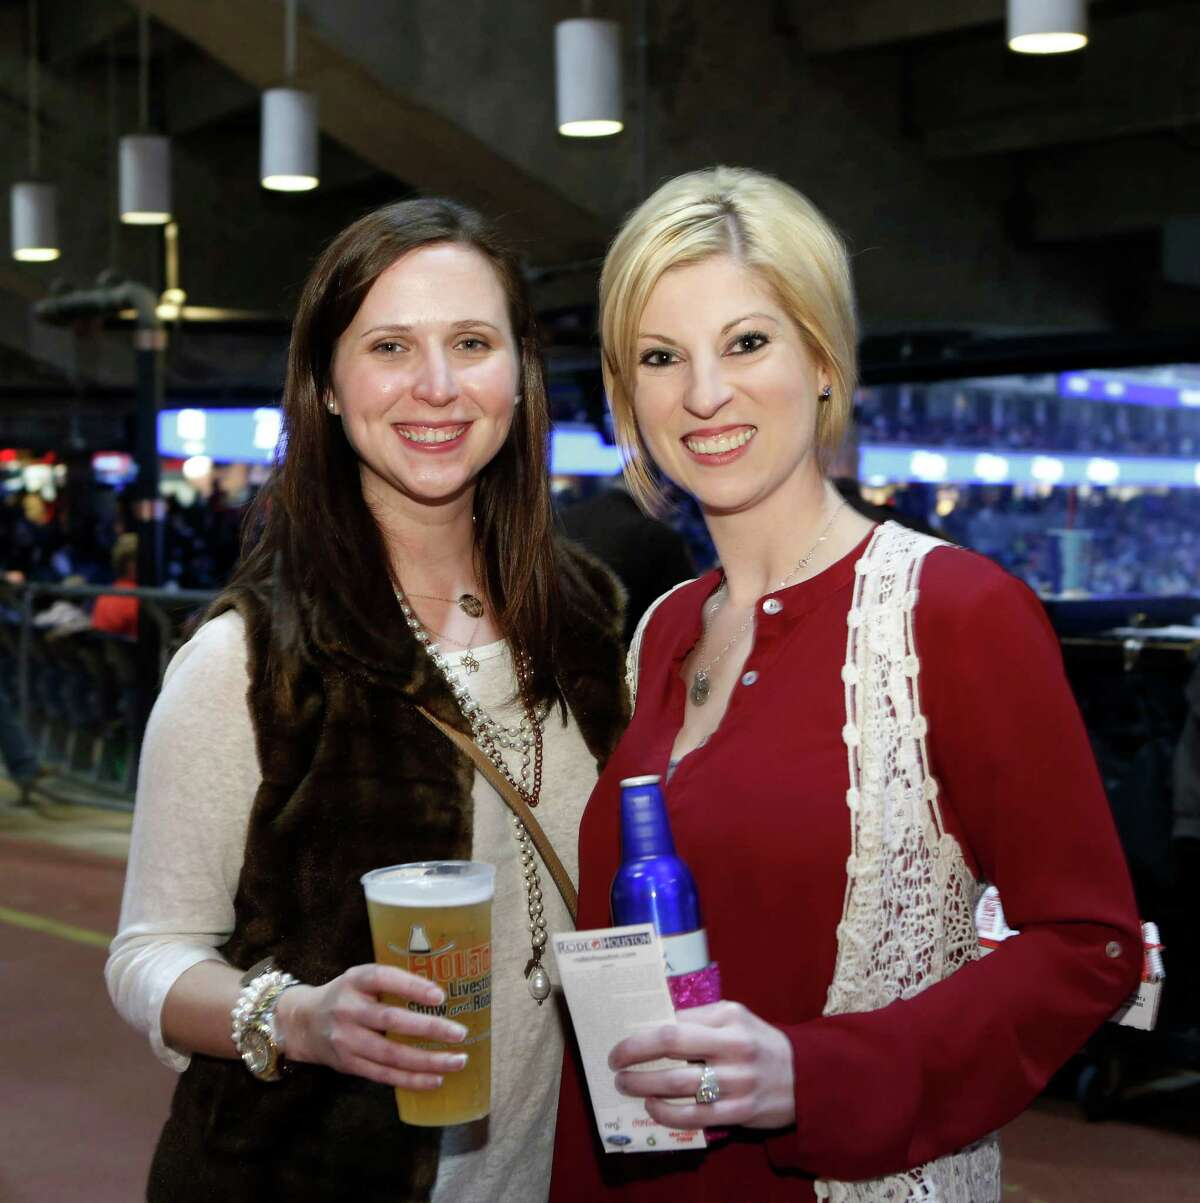 Fans at Brantley Gilbert's RodeoHouston concert on March 11.